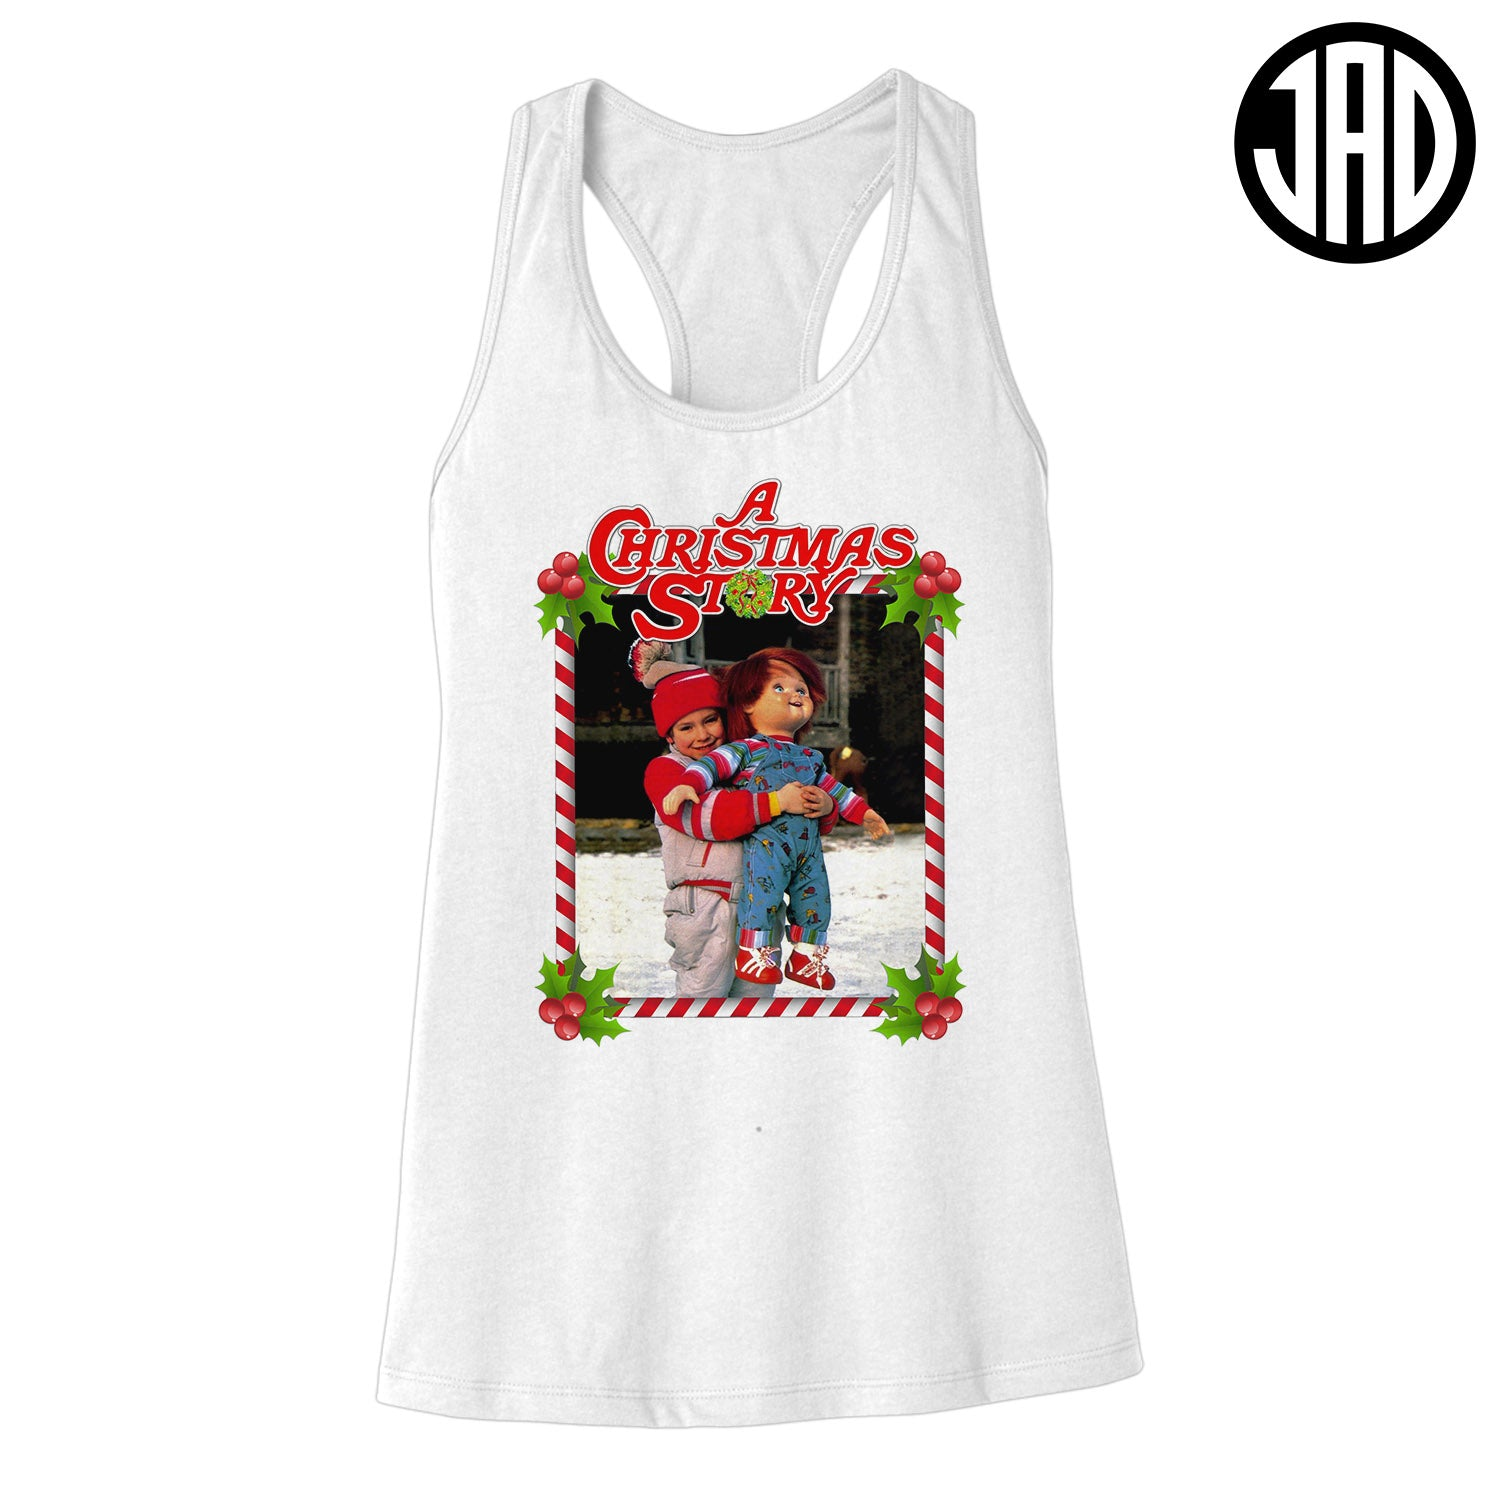 A Christmas Story - Women's Racerback Tank